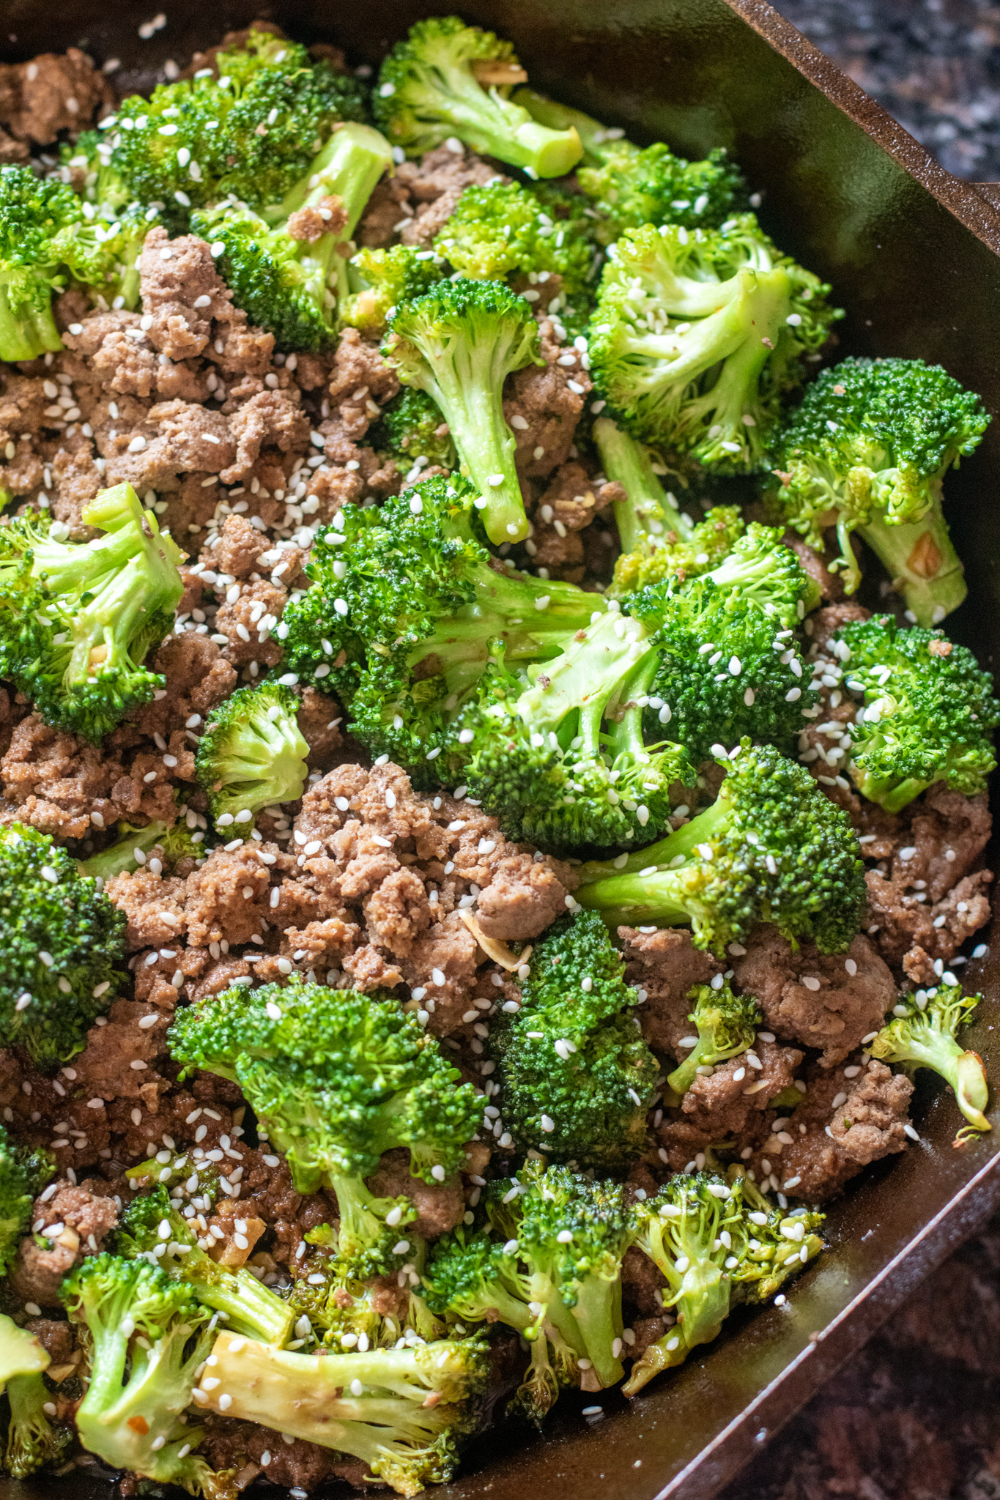 Easy Ground Beef And Broccoli Recipe In 2020 Ground Beef And Broccoli Broccoli Beef Ground Beef